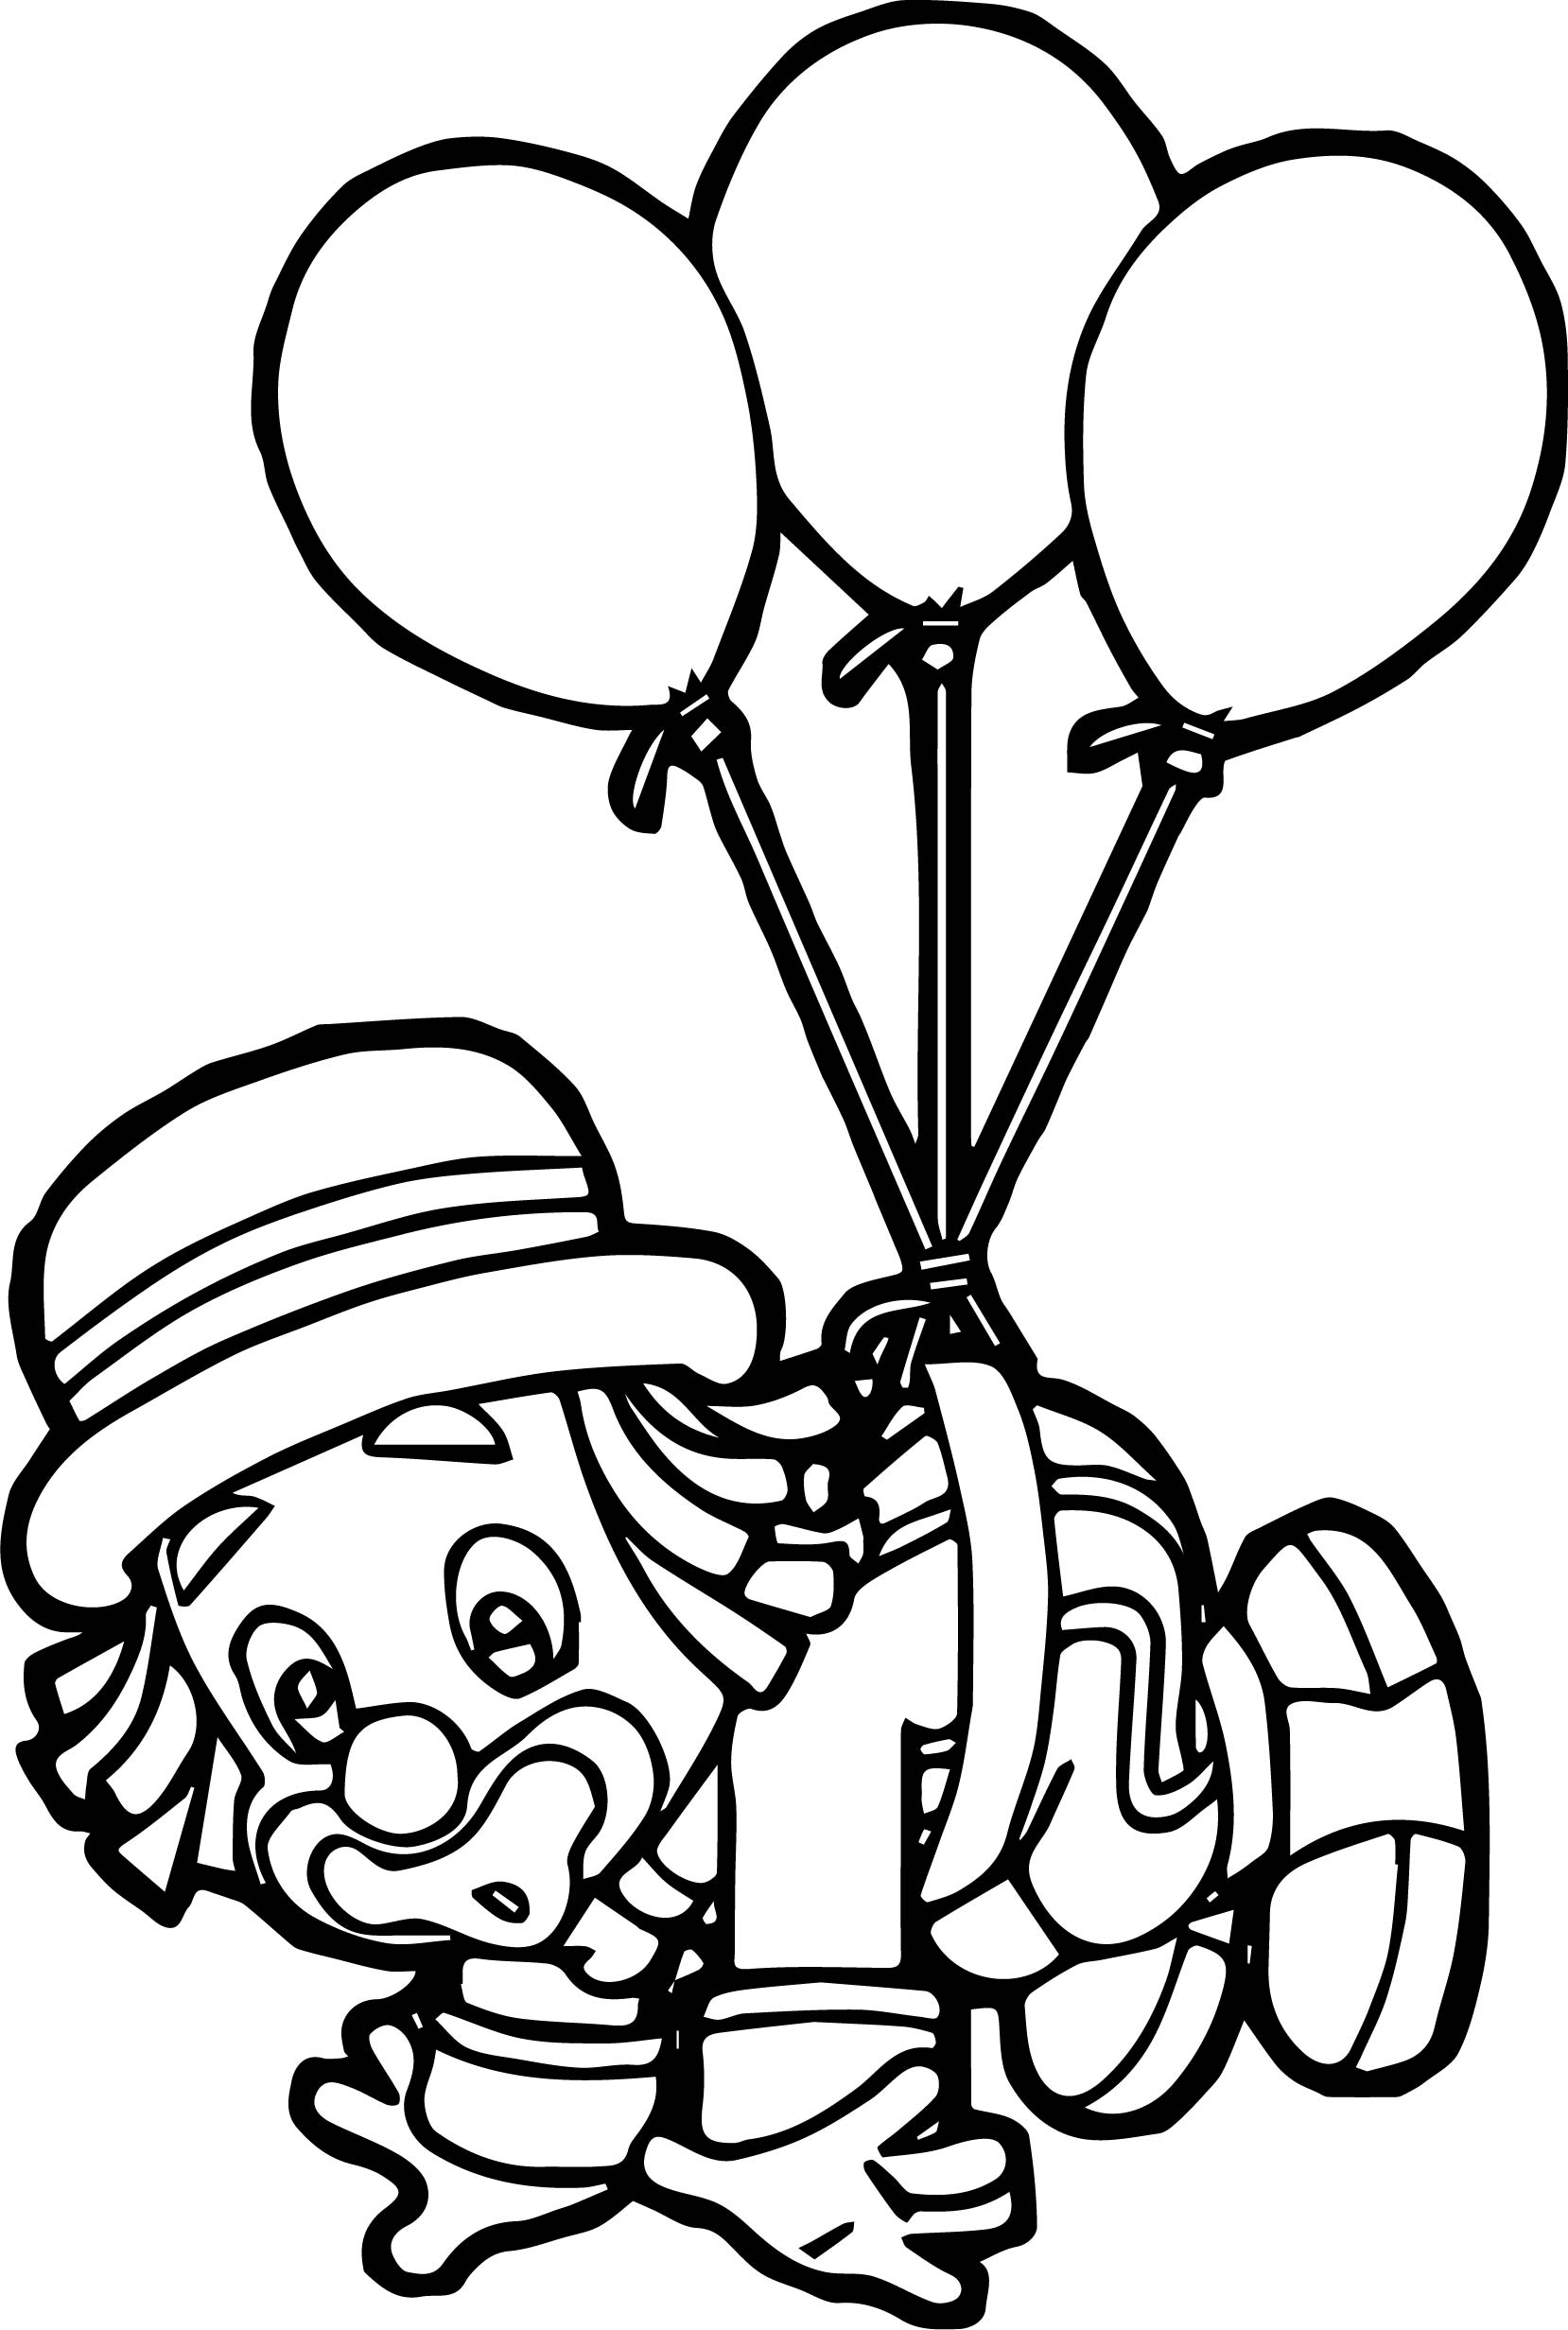 Free Coloring Pages Circus Clowns - Auto Electrical Wiring Diagram